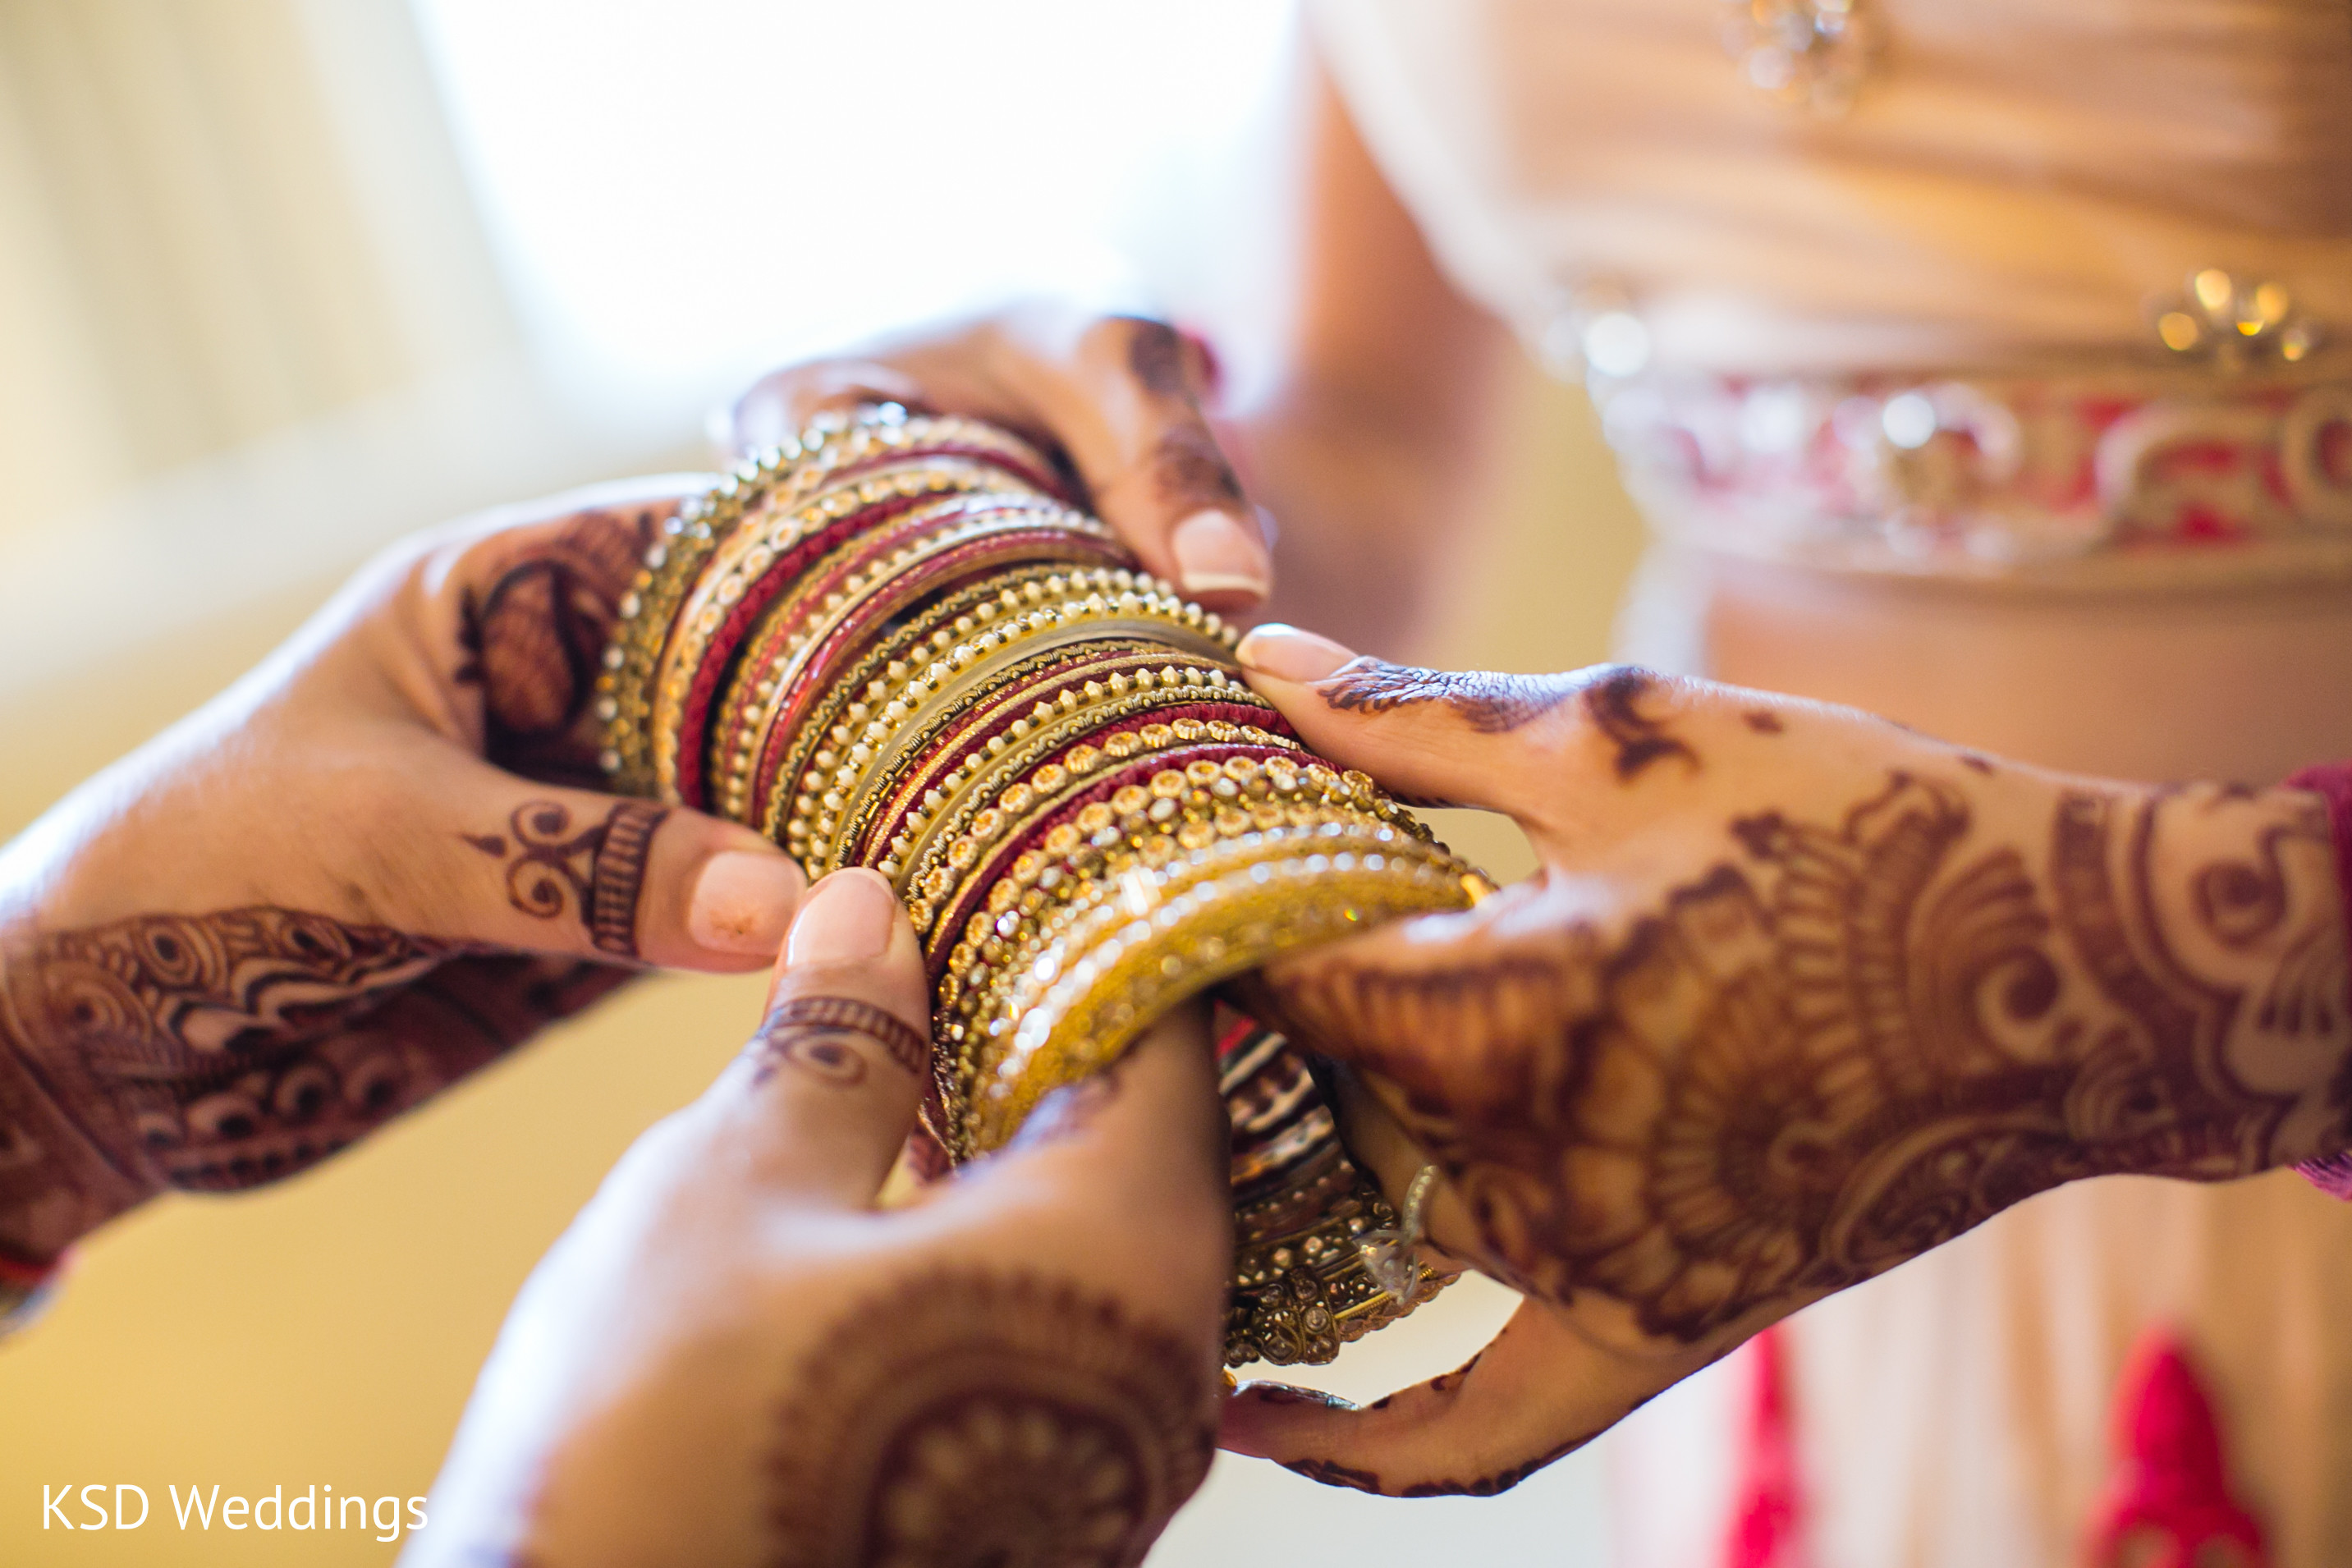 woodcliff lake hindu singles This speed dating event is for indian single professionals we expect around 10  men and 10 women to participate, and each date will be 5 minutes you will get.